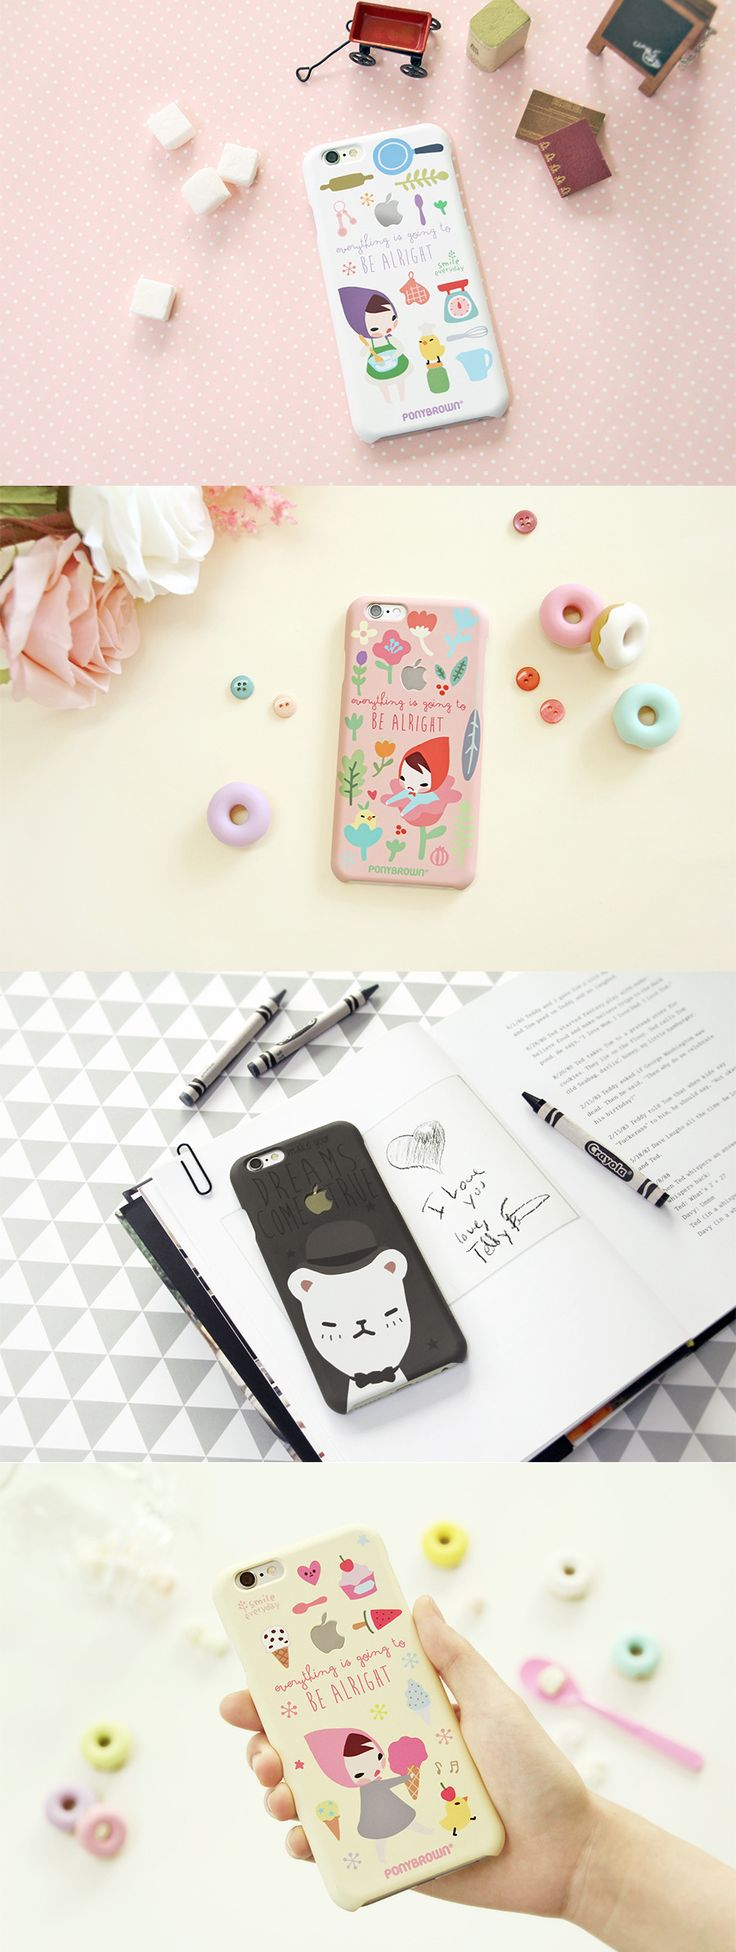 This is a cute and functional iPhone case for iPhone 6 and 6plus. The awesome thing is that it provides you with lovely background images matching the case designs. Isn't it wonderful?